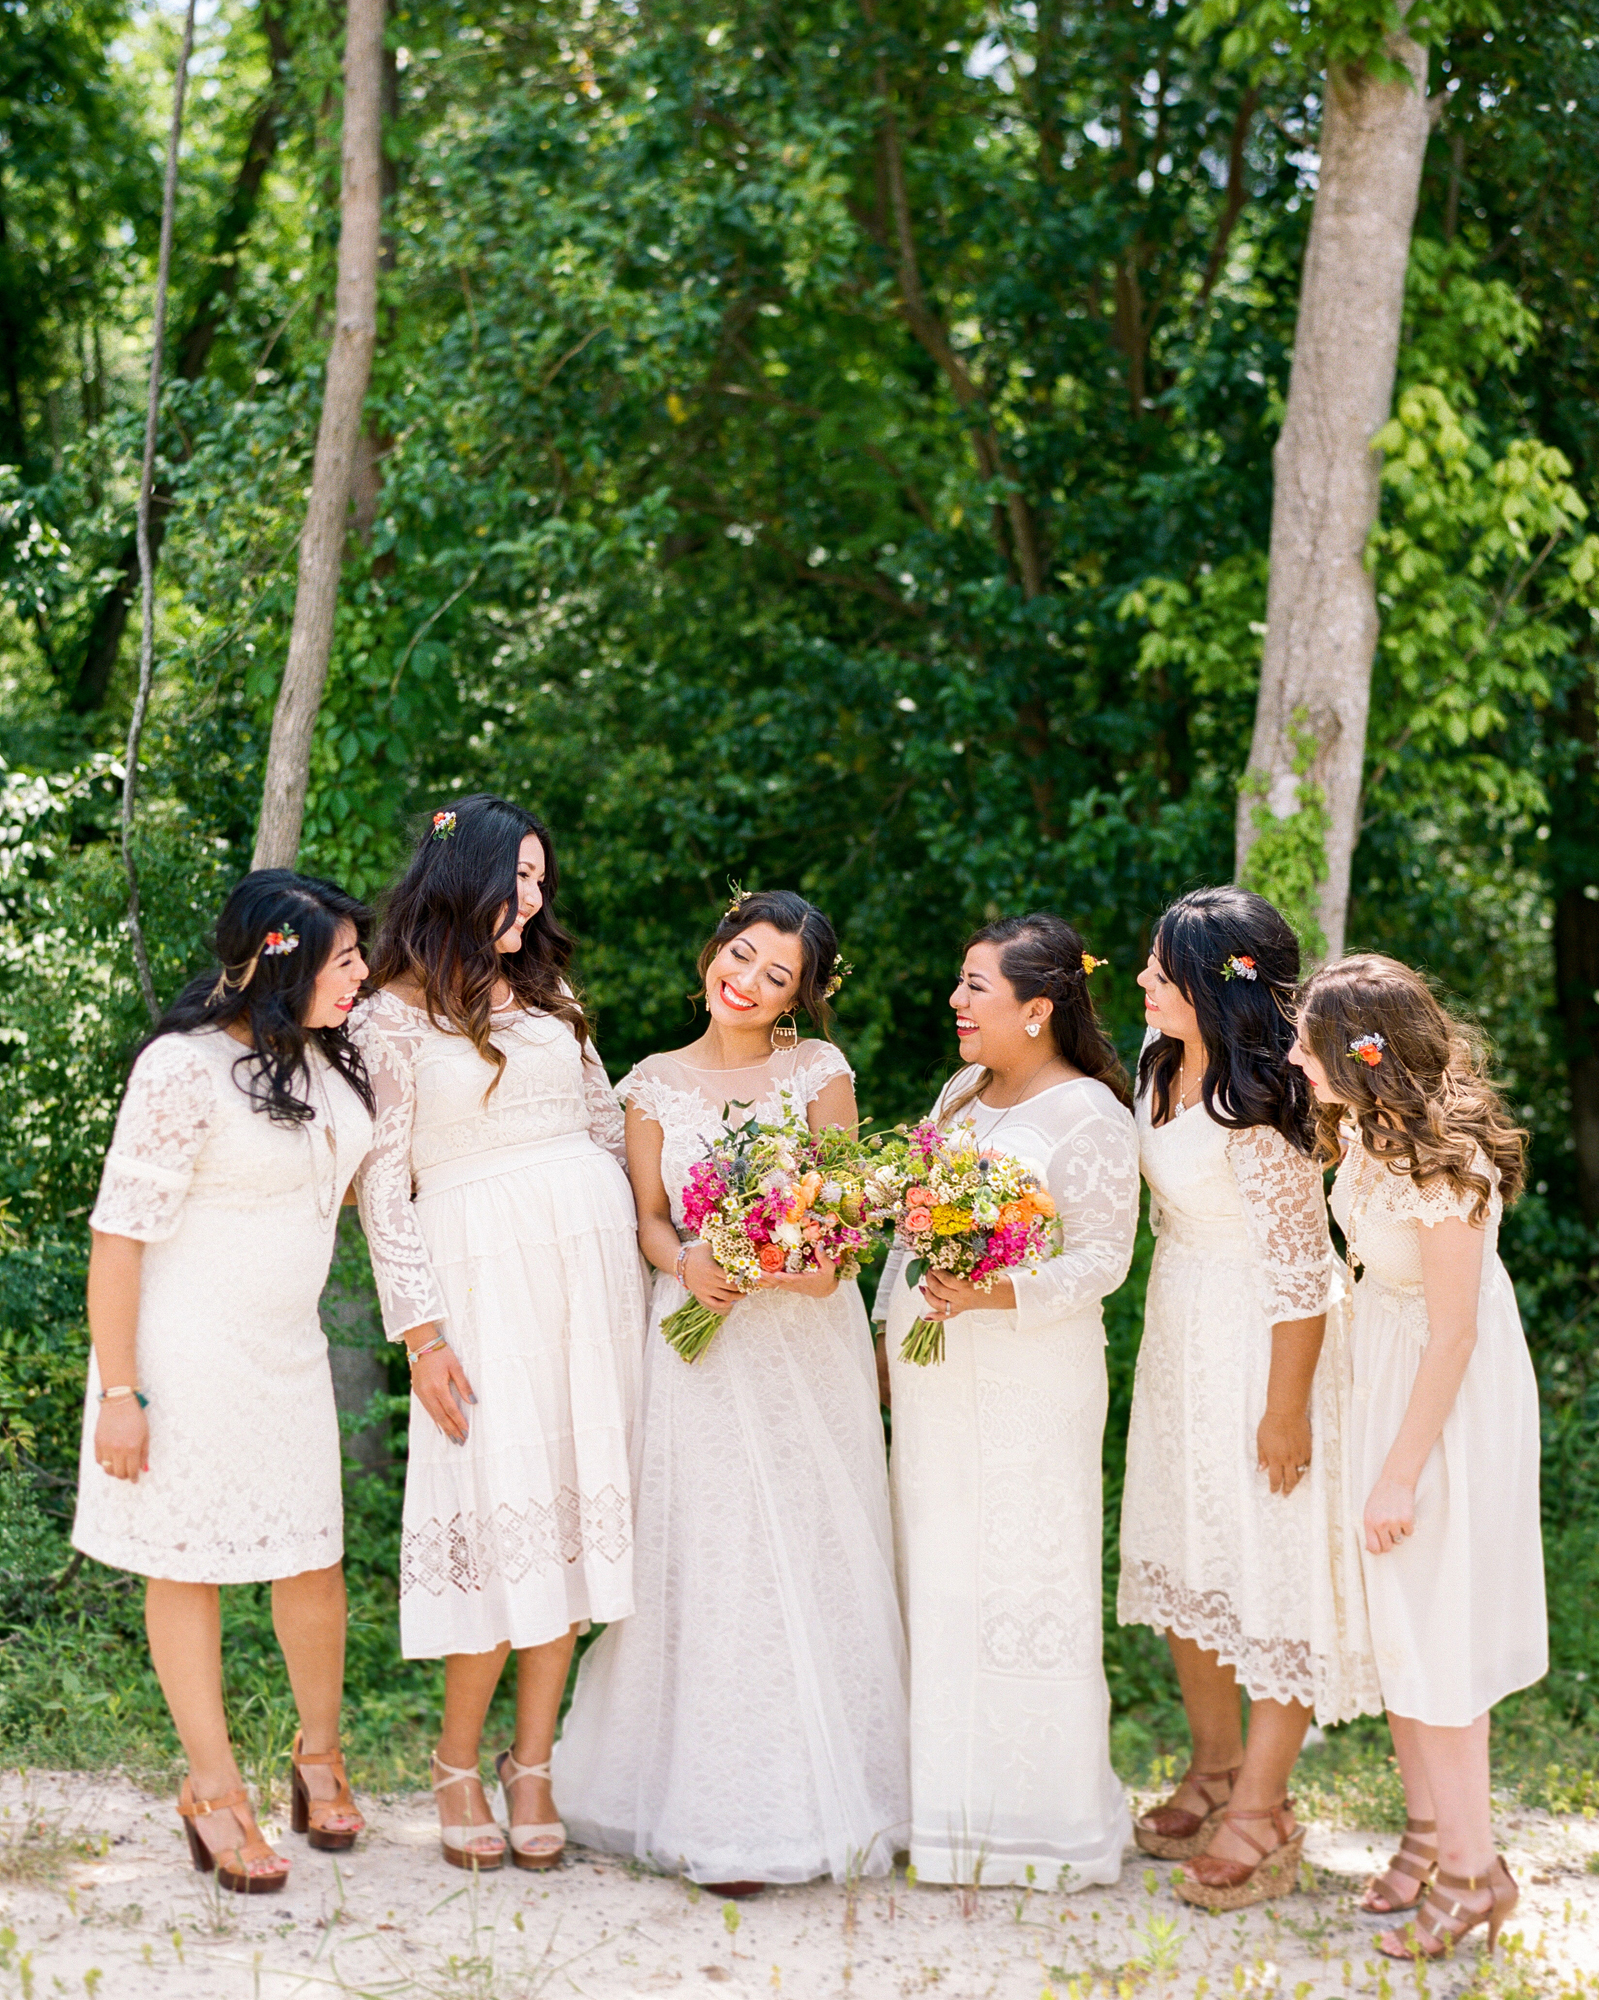 atalia-raul-wedding-bridesmaids-15-s112395-1215.jpg